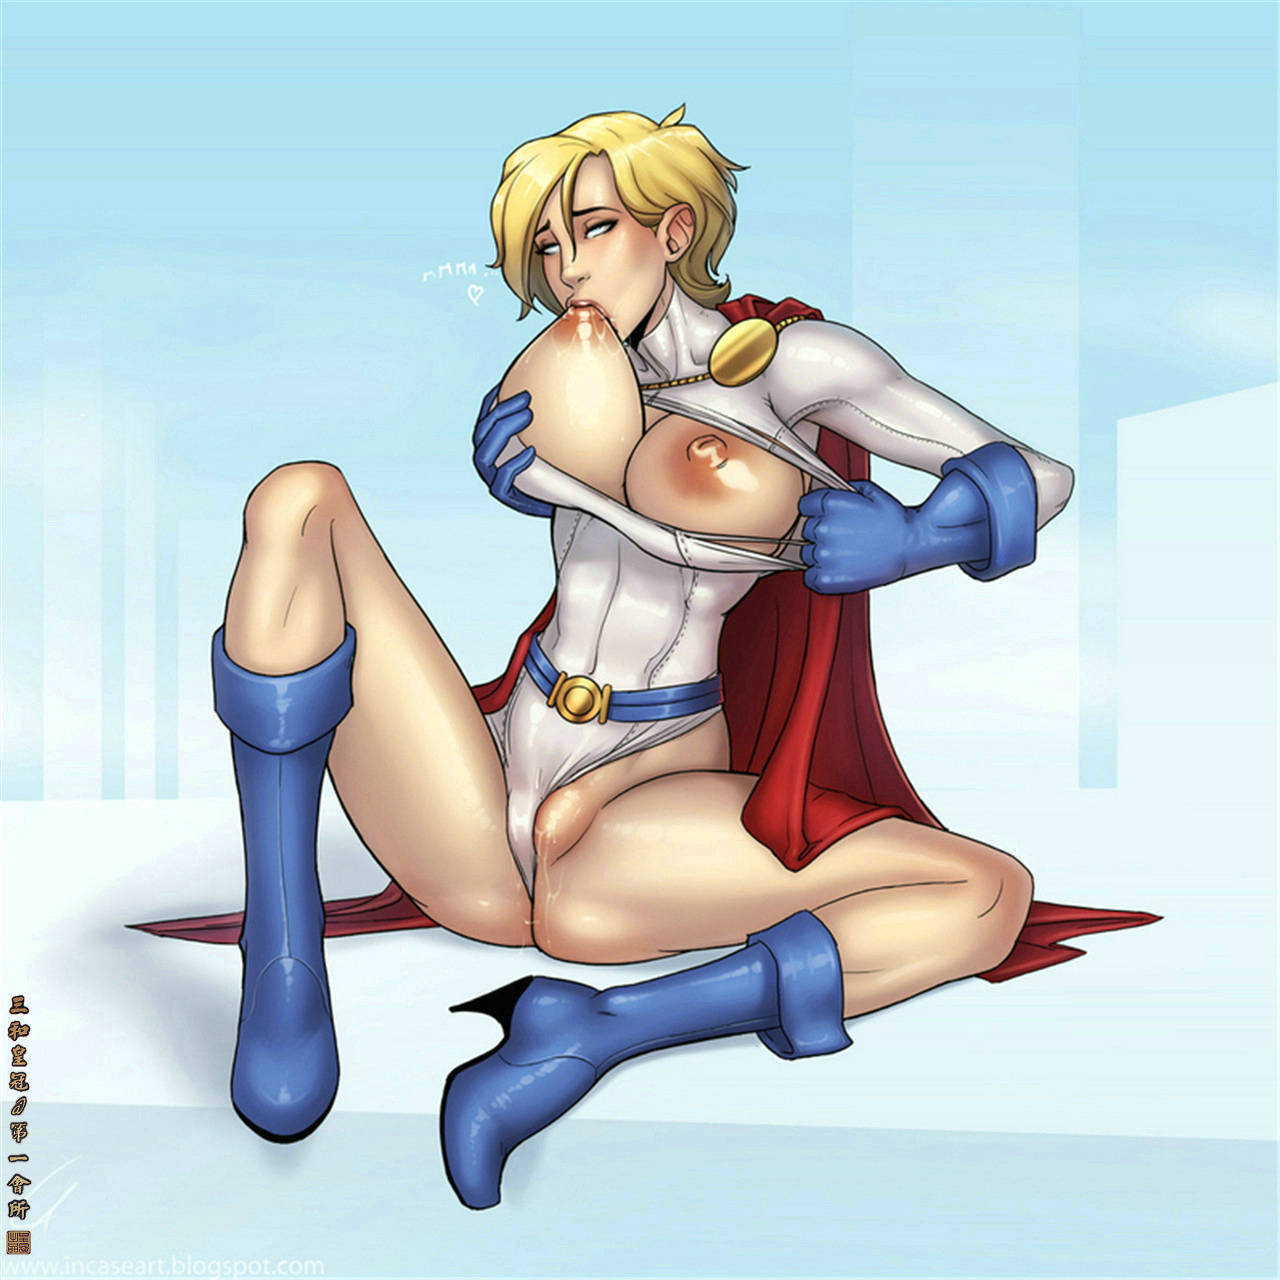 Хёнтай power girl 19 фотография